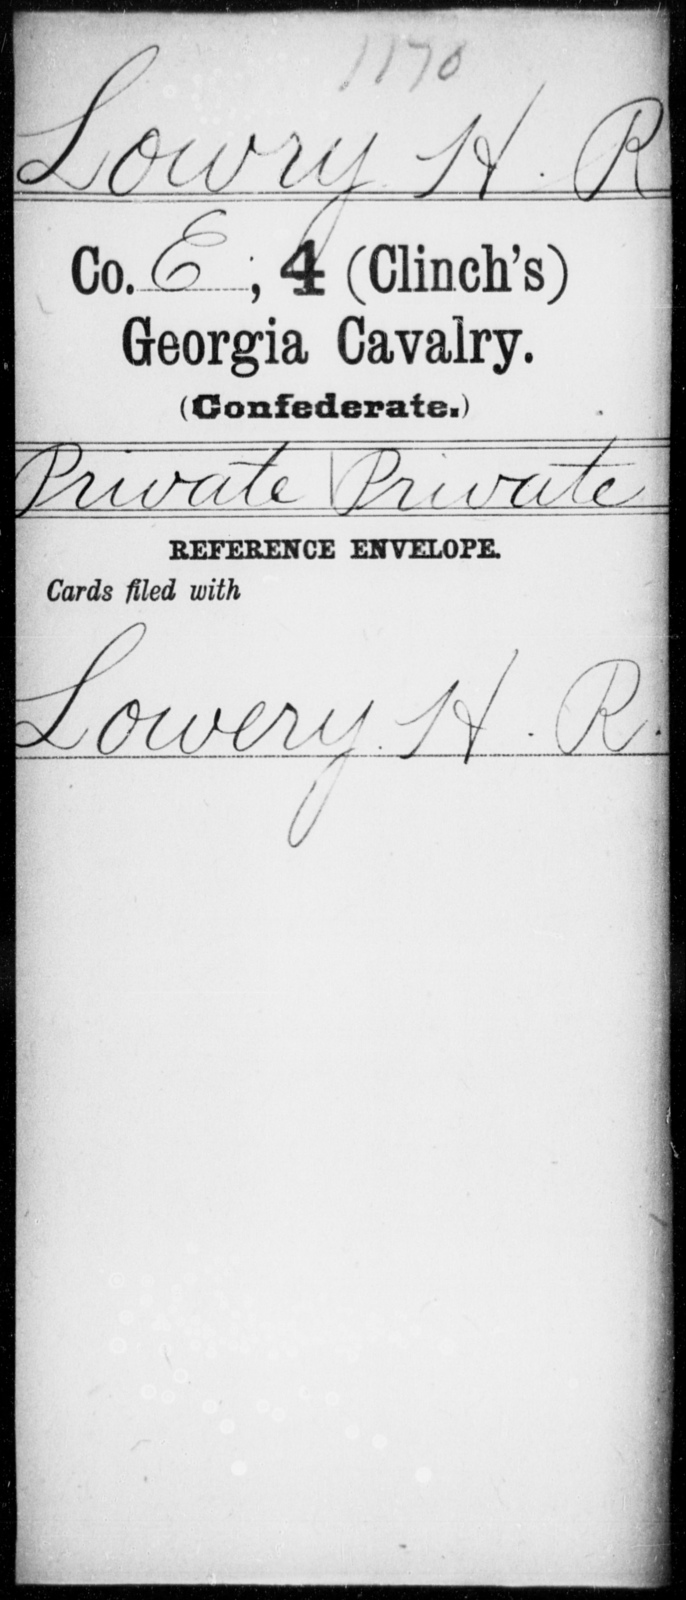 Lowry, H R - 4th (Clinch's) Cavalry